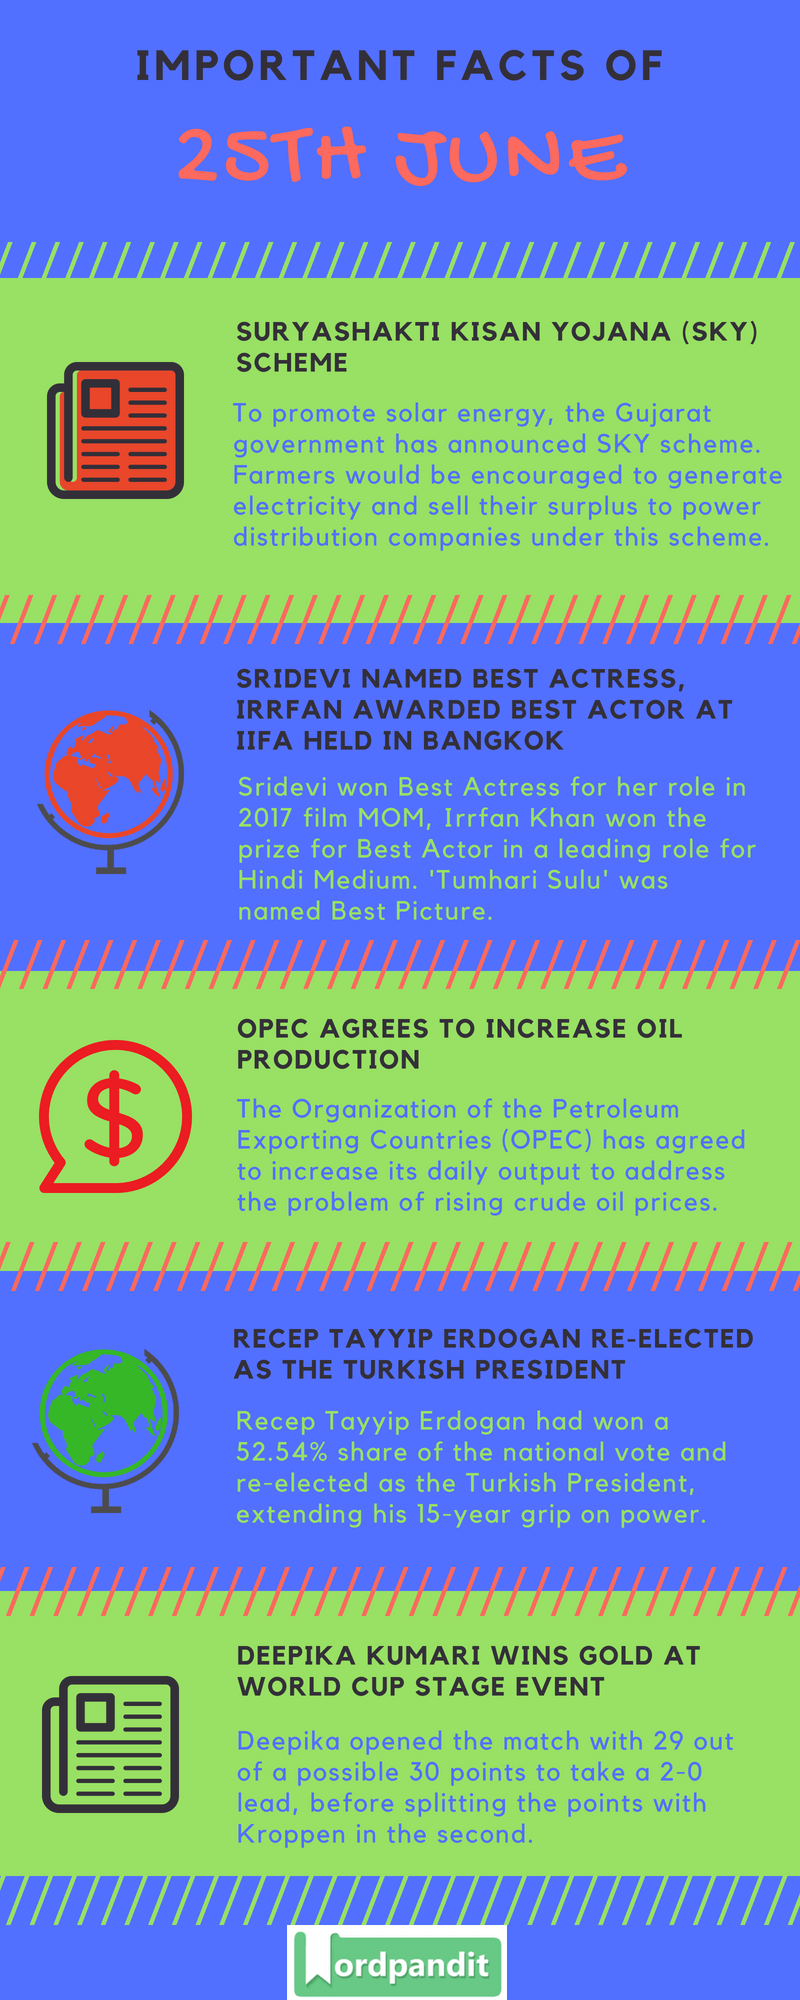 Daily Current Affairs 25 June 2018 Current Affairs Quiz June 25 2018 Current Affairs Infographic